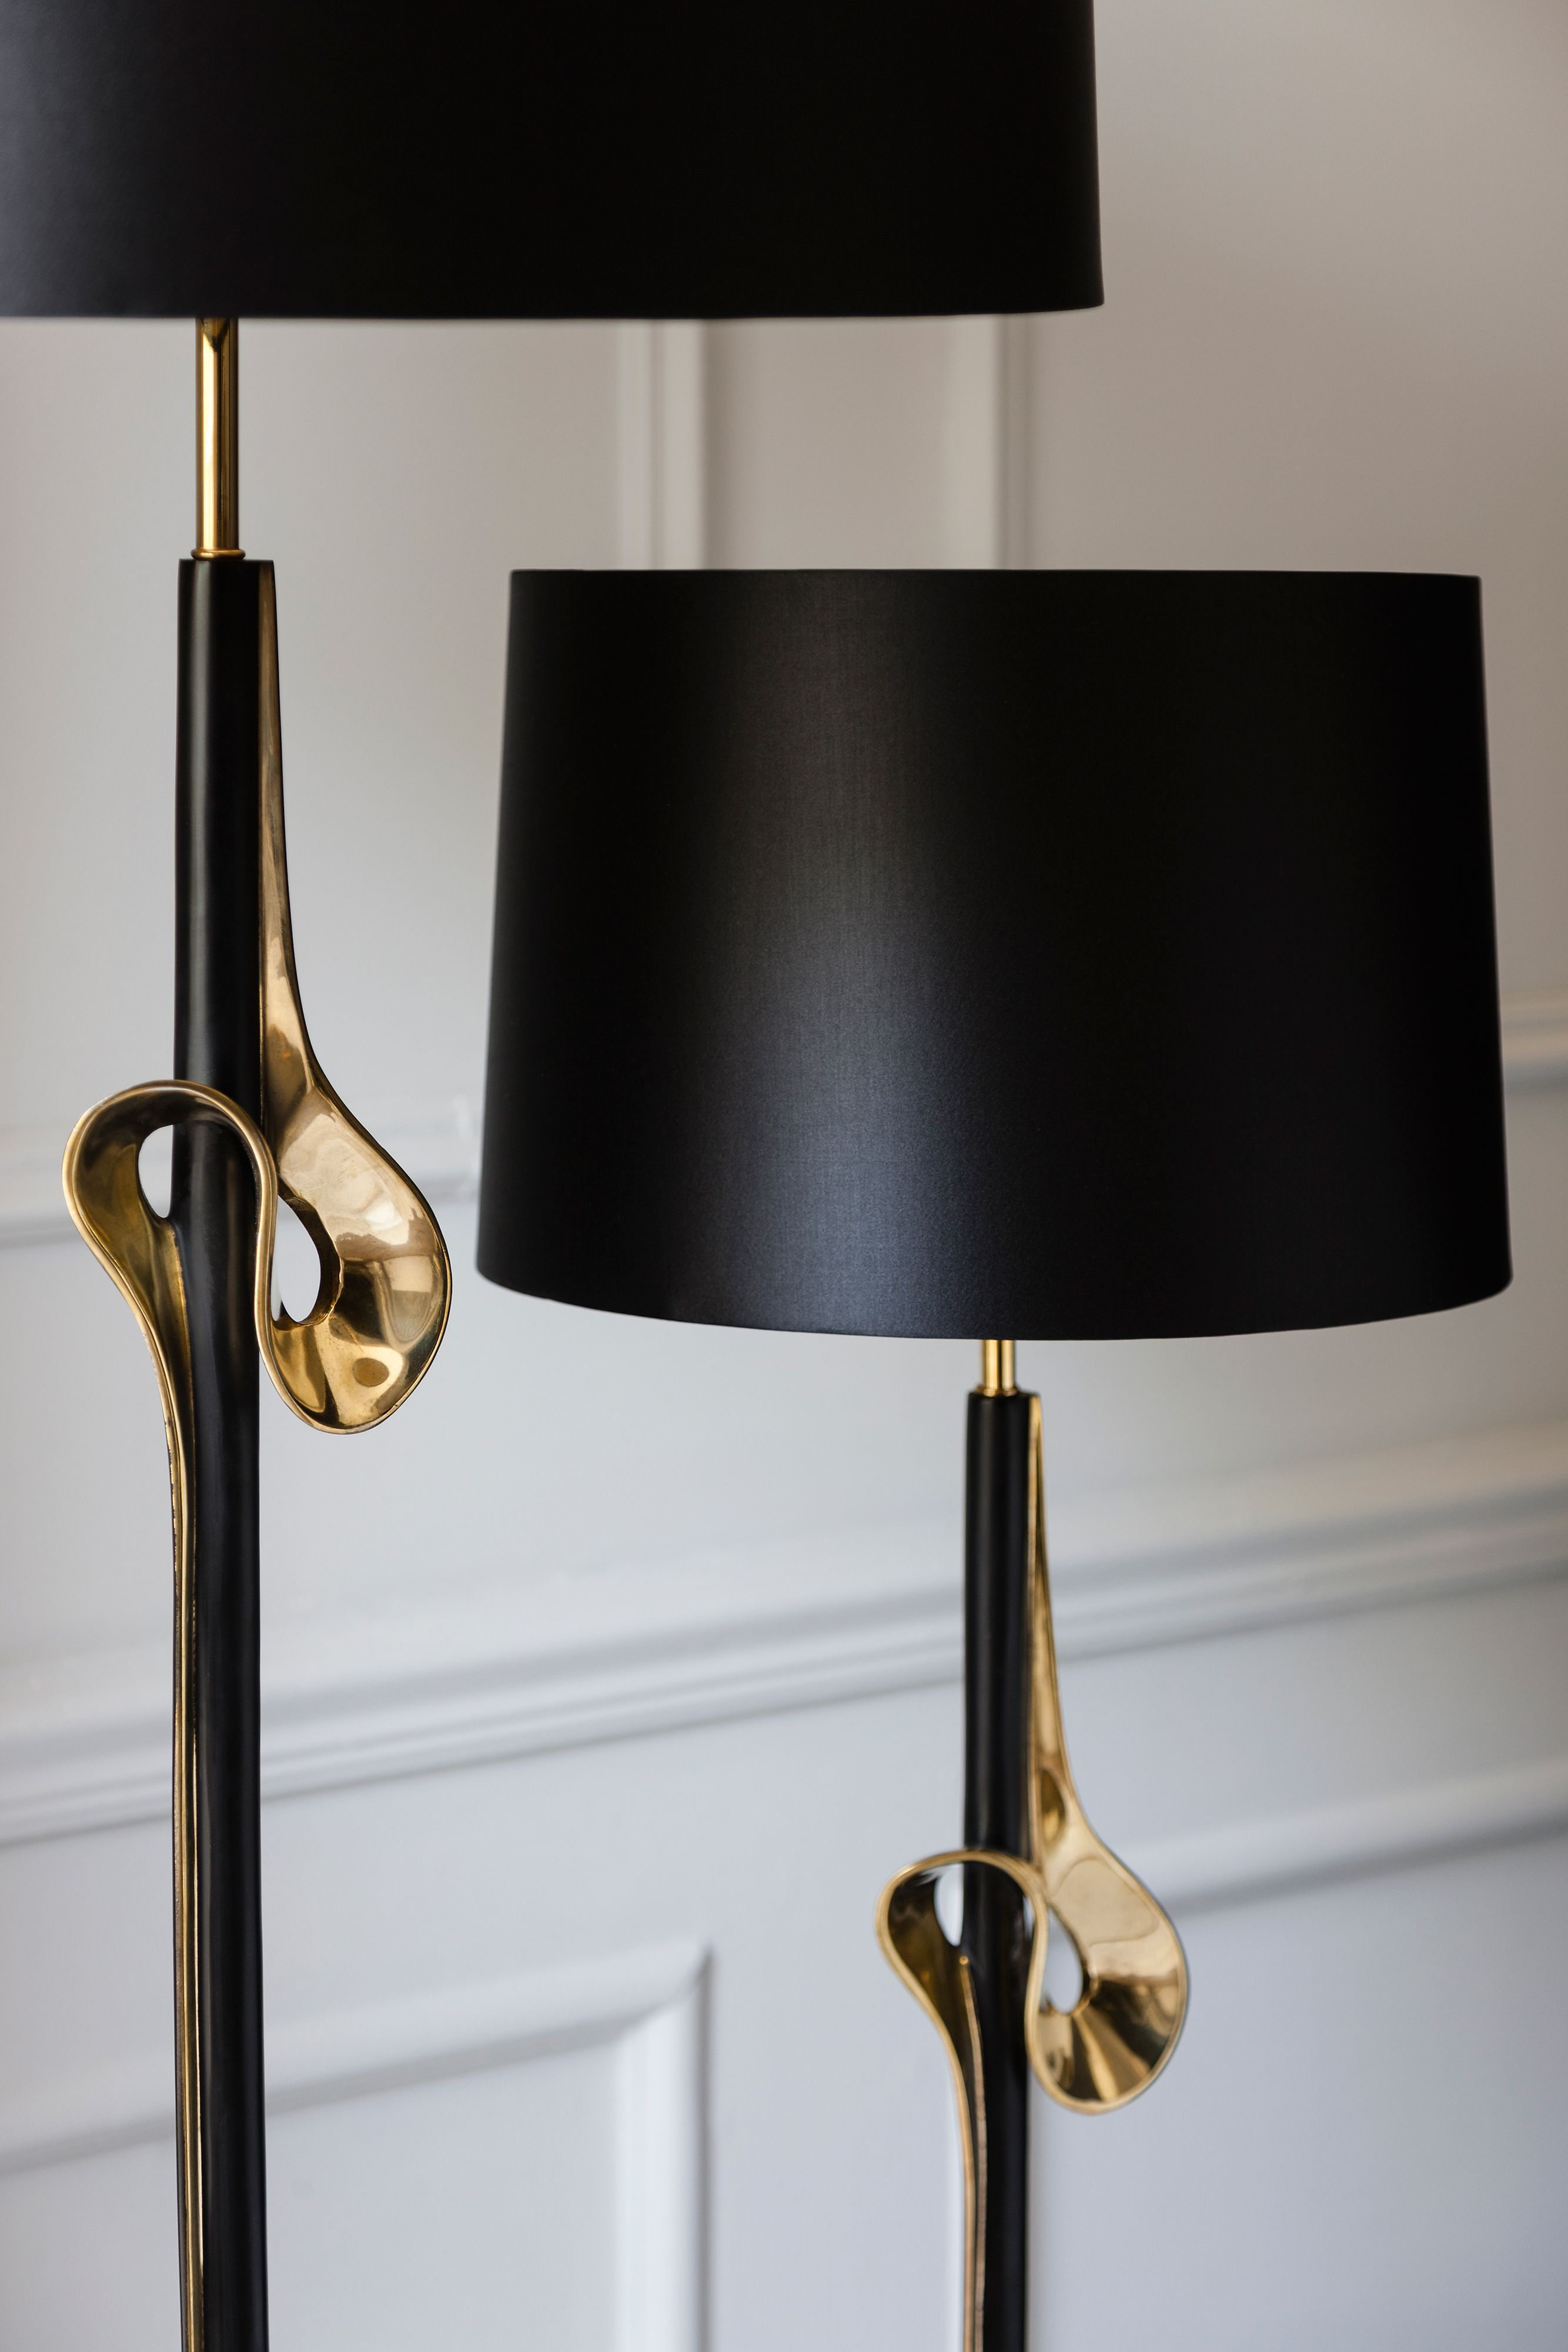 Heathfield And Co Olympus Floor Lamp With Br Detailing